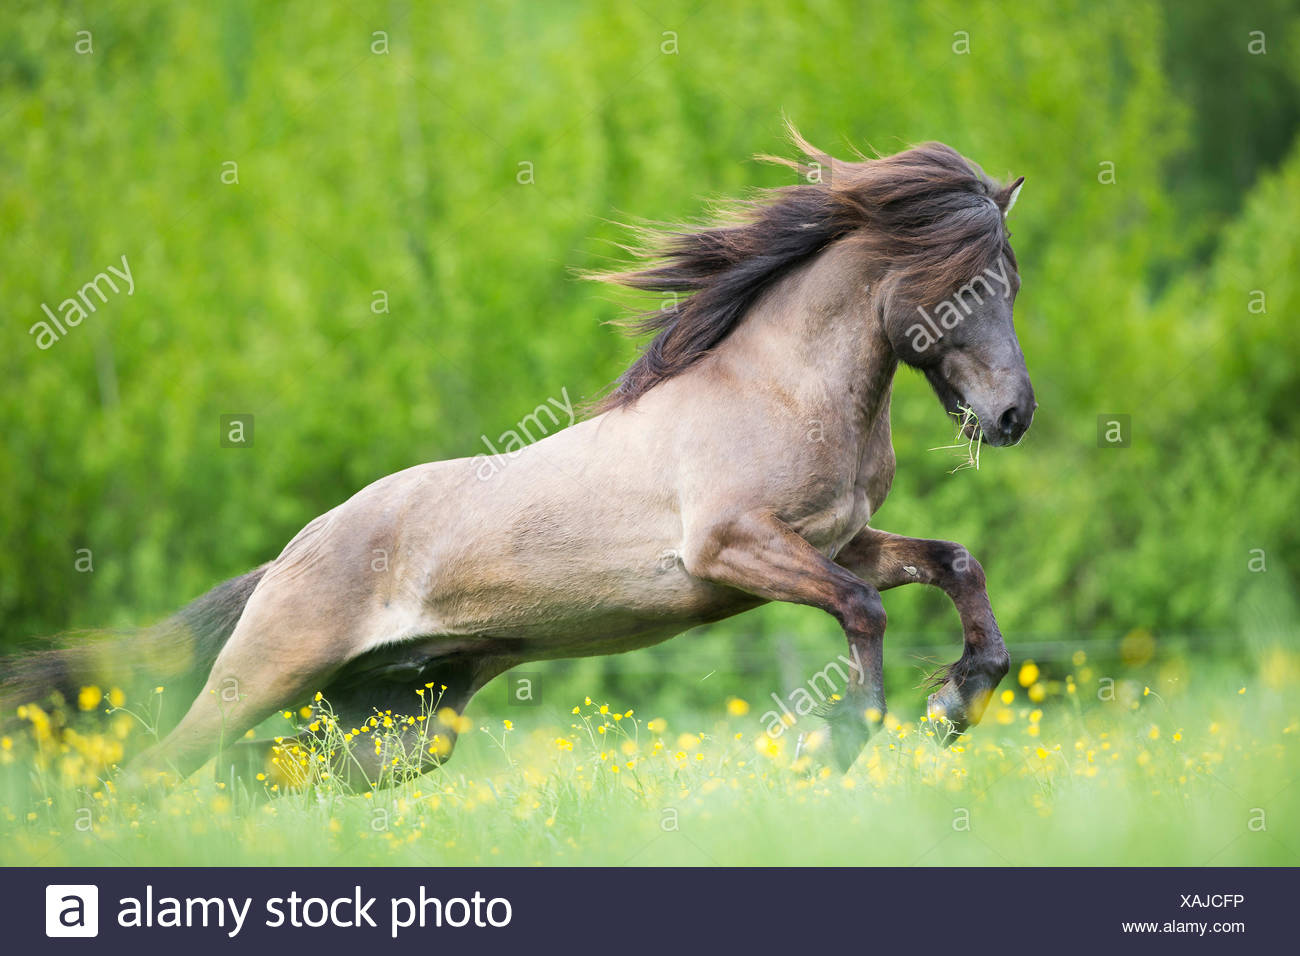 Icelandic Horse. Stallion galloping on a pasture. Austria - Stock Image